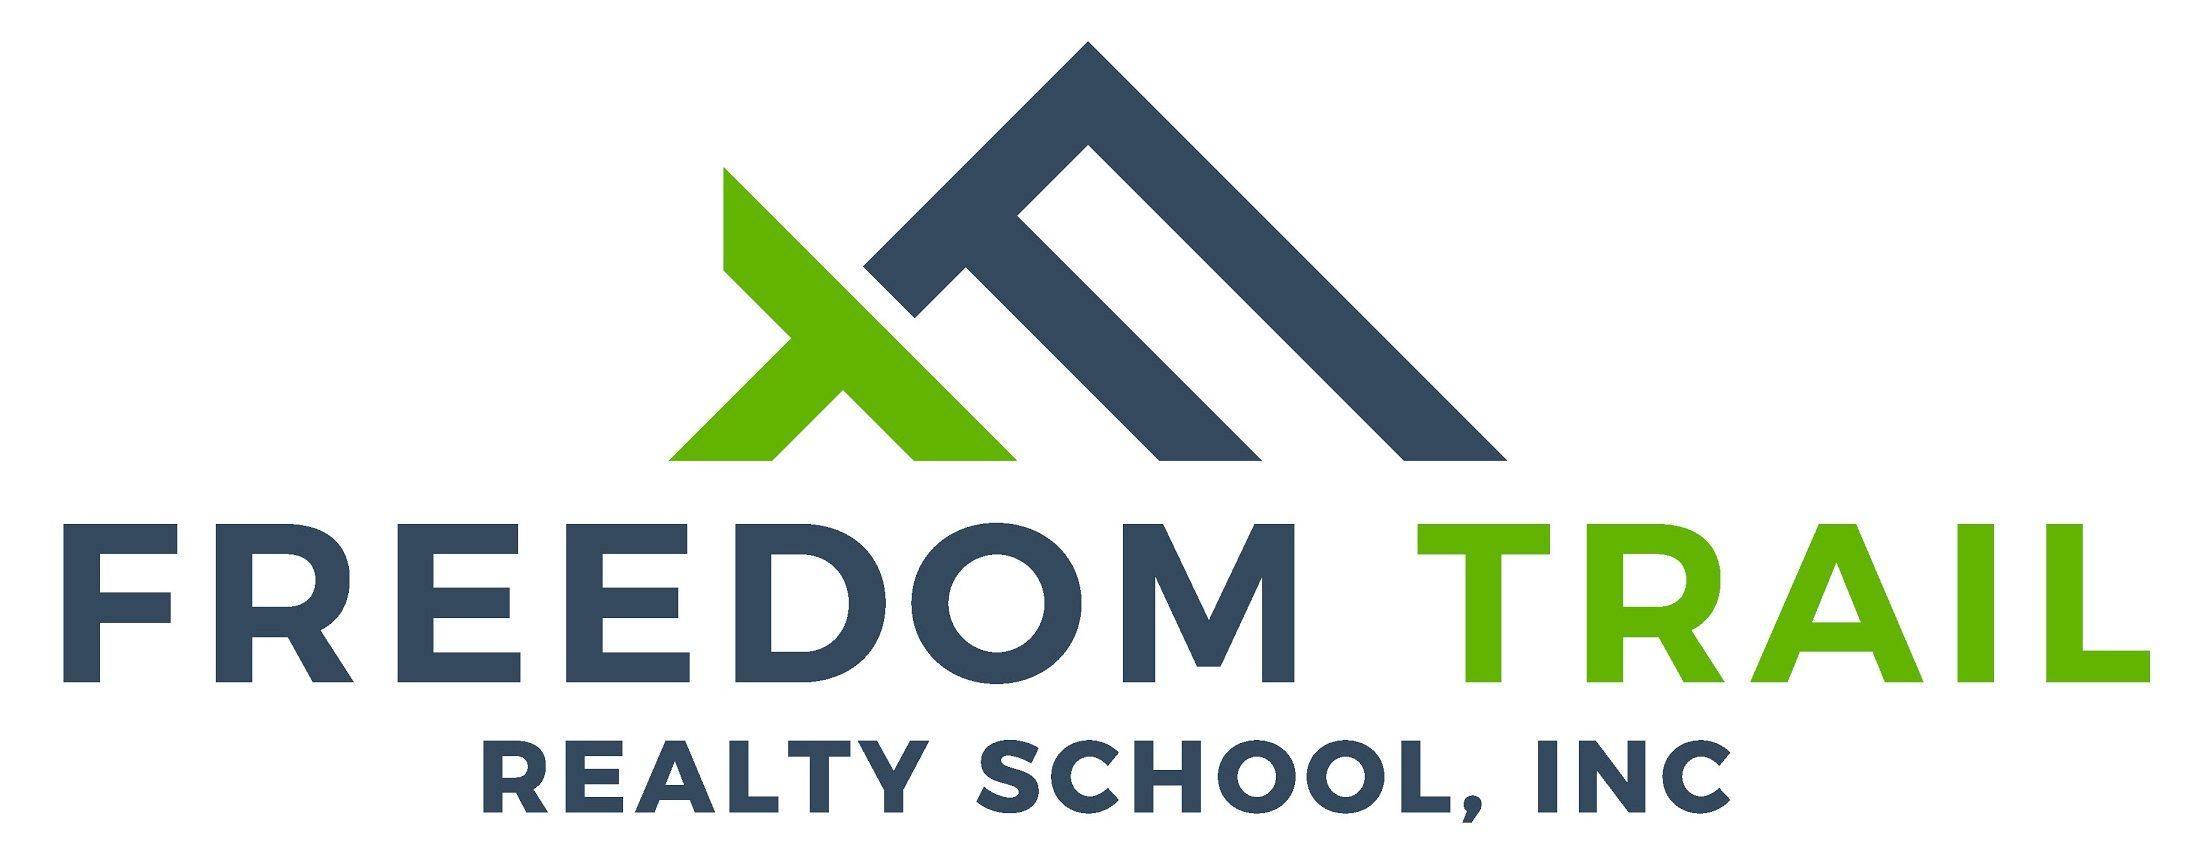 Freedom Trail Realty School logo